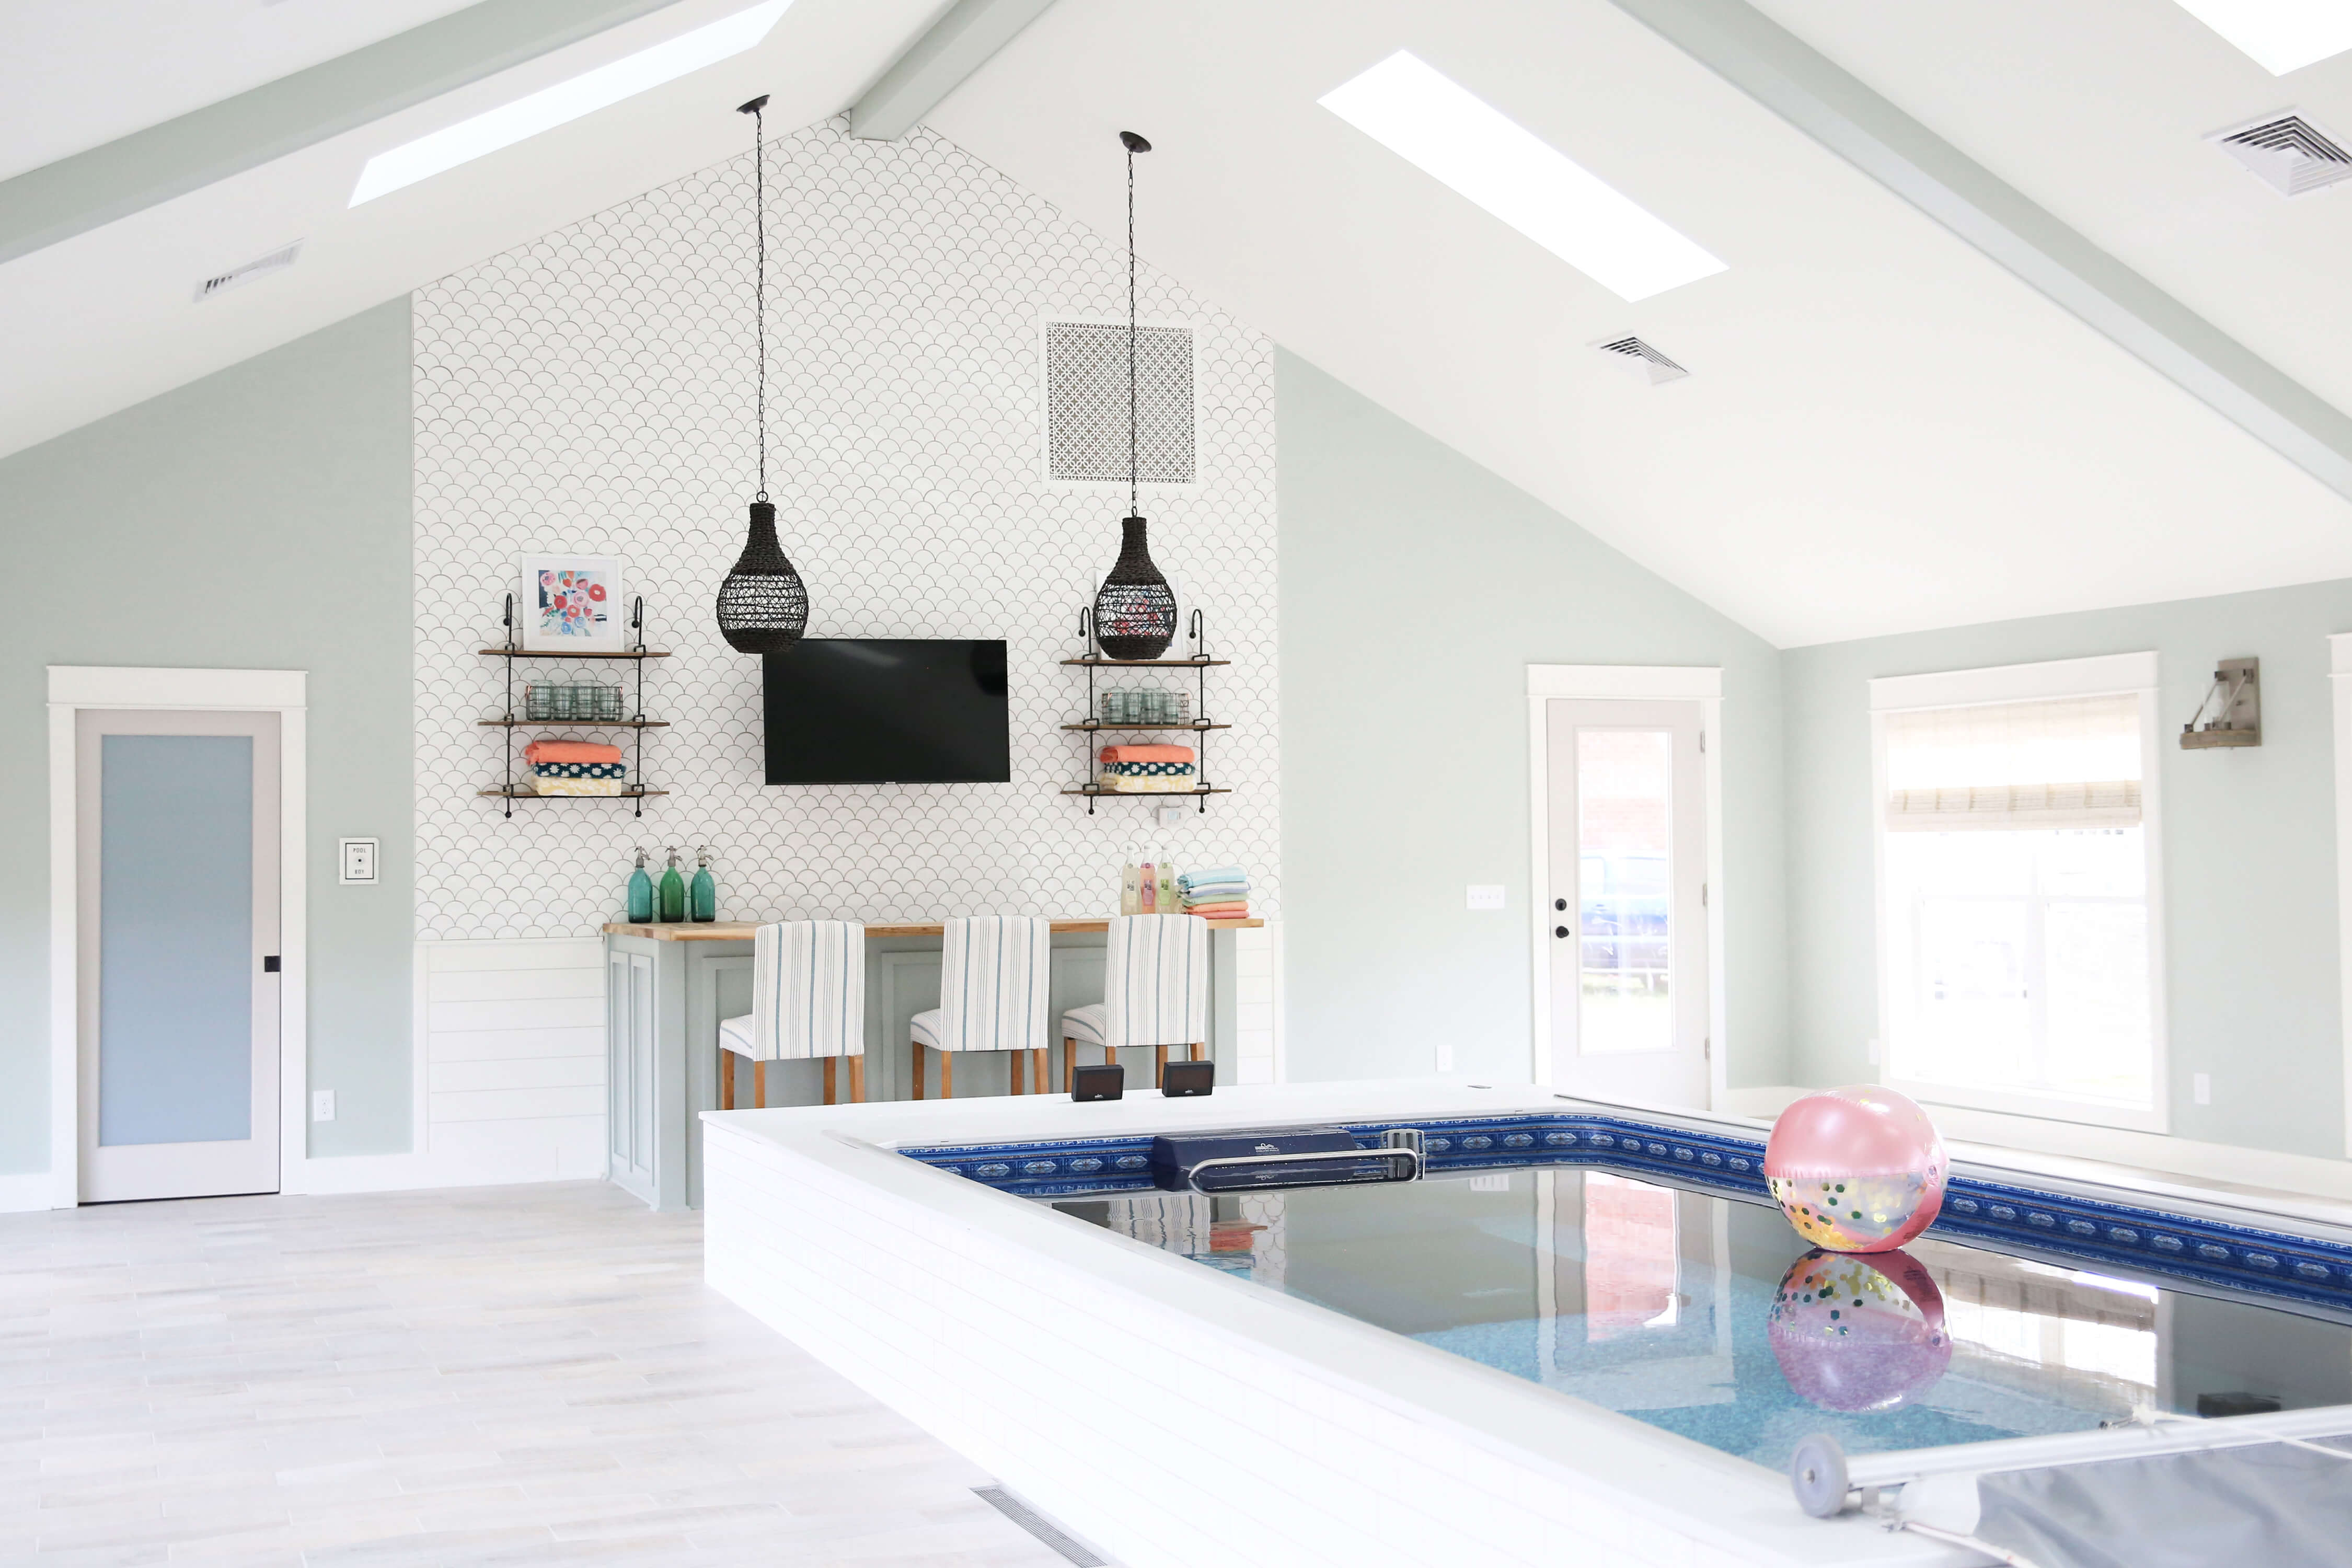 Pool House Design | Interior Designed Pool Room | Endless ...